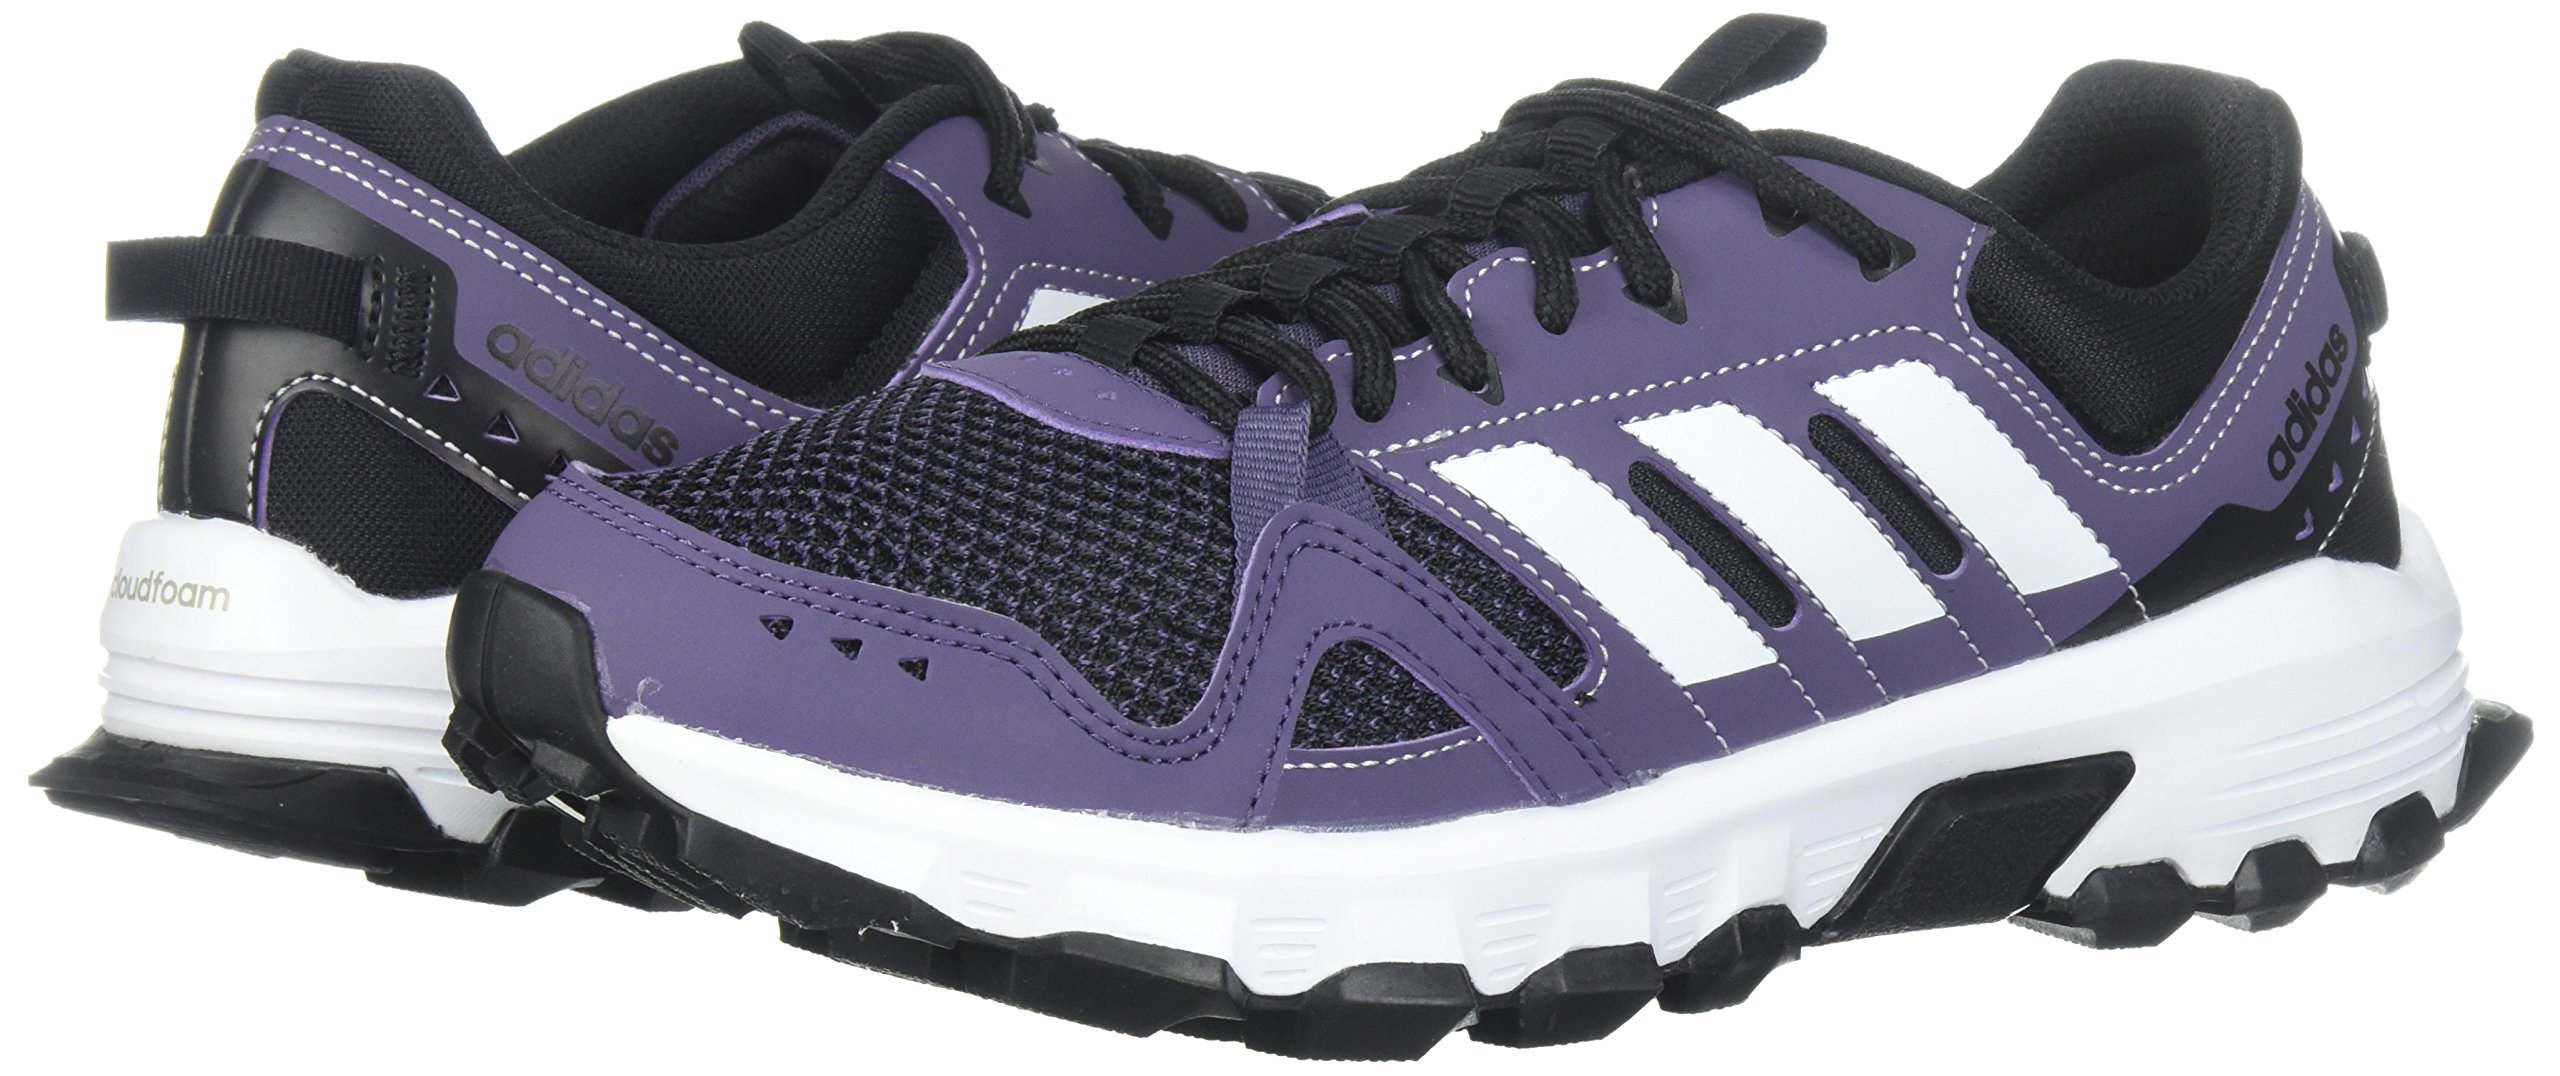 adidas Women's Rockadia w Trail Running Shoe, Trace Purple/White/Core Black, 7 M US by adidas (Image #6)